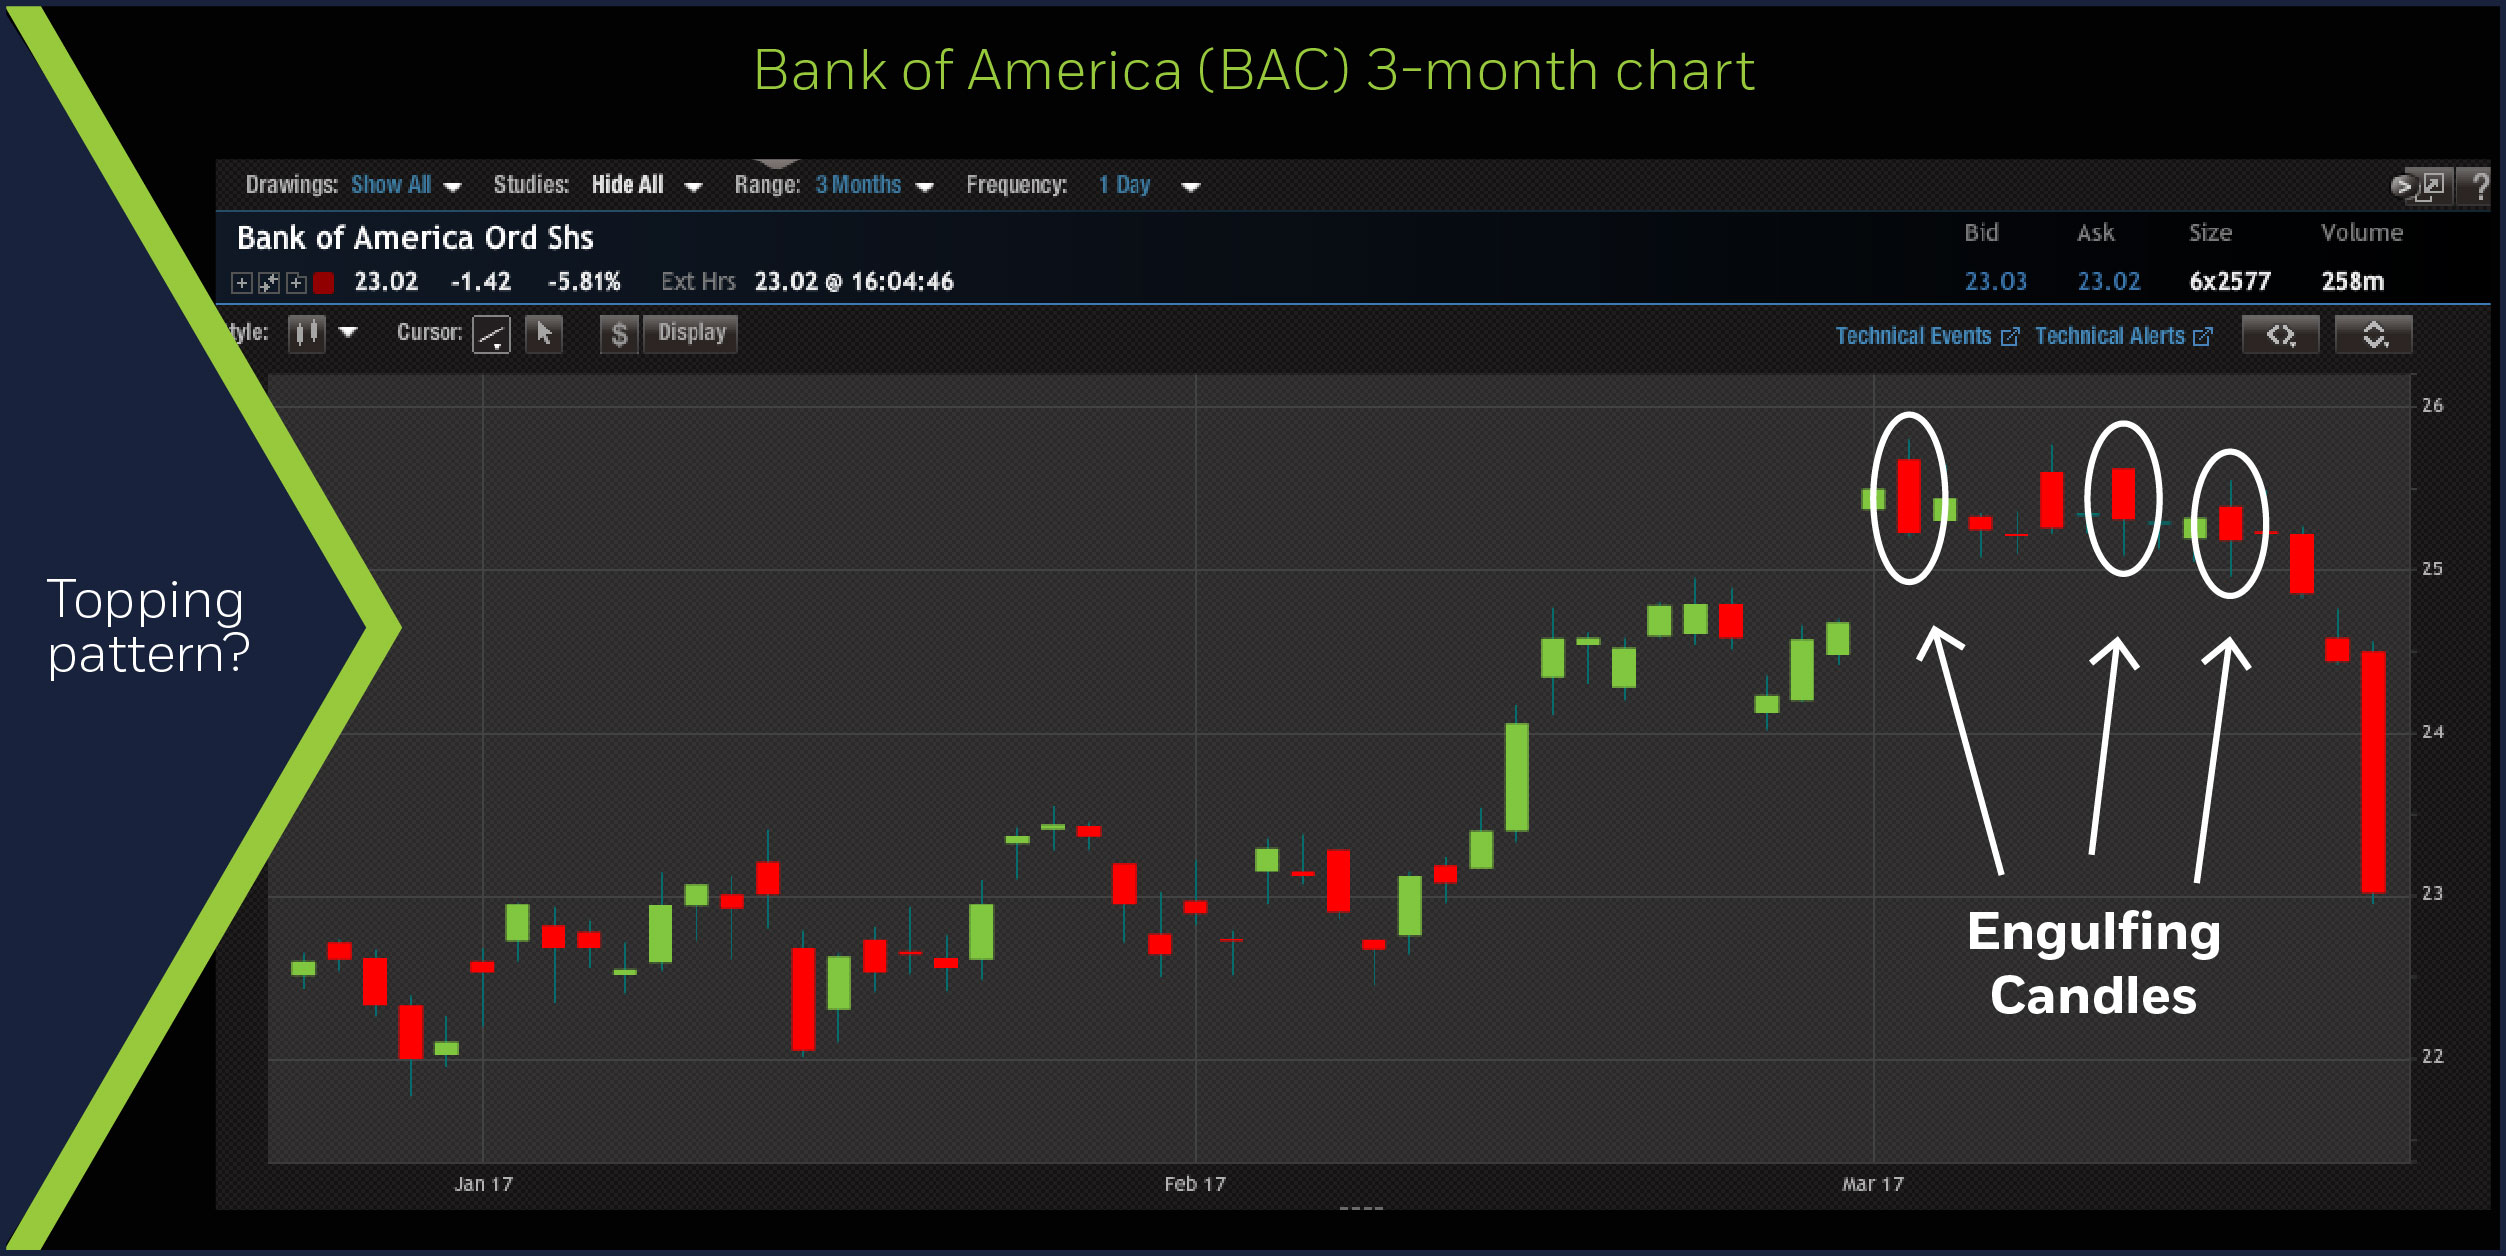 Bearish patterns detected in bank stocks bank of america 3 month chart biocorpaavc Choice Image